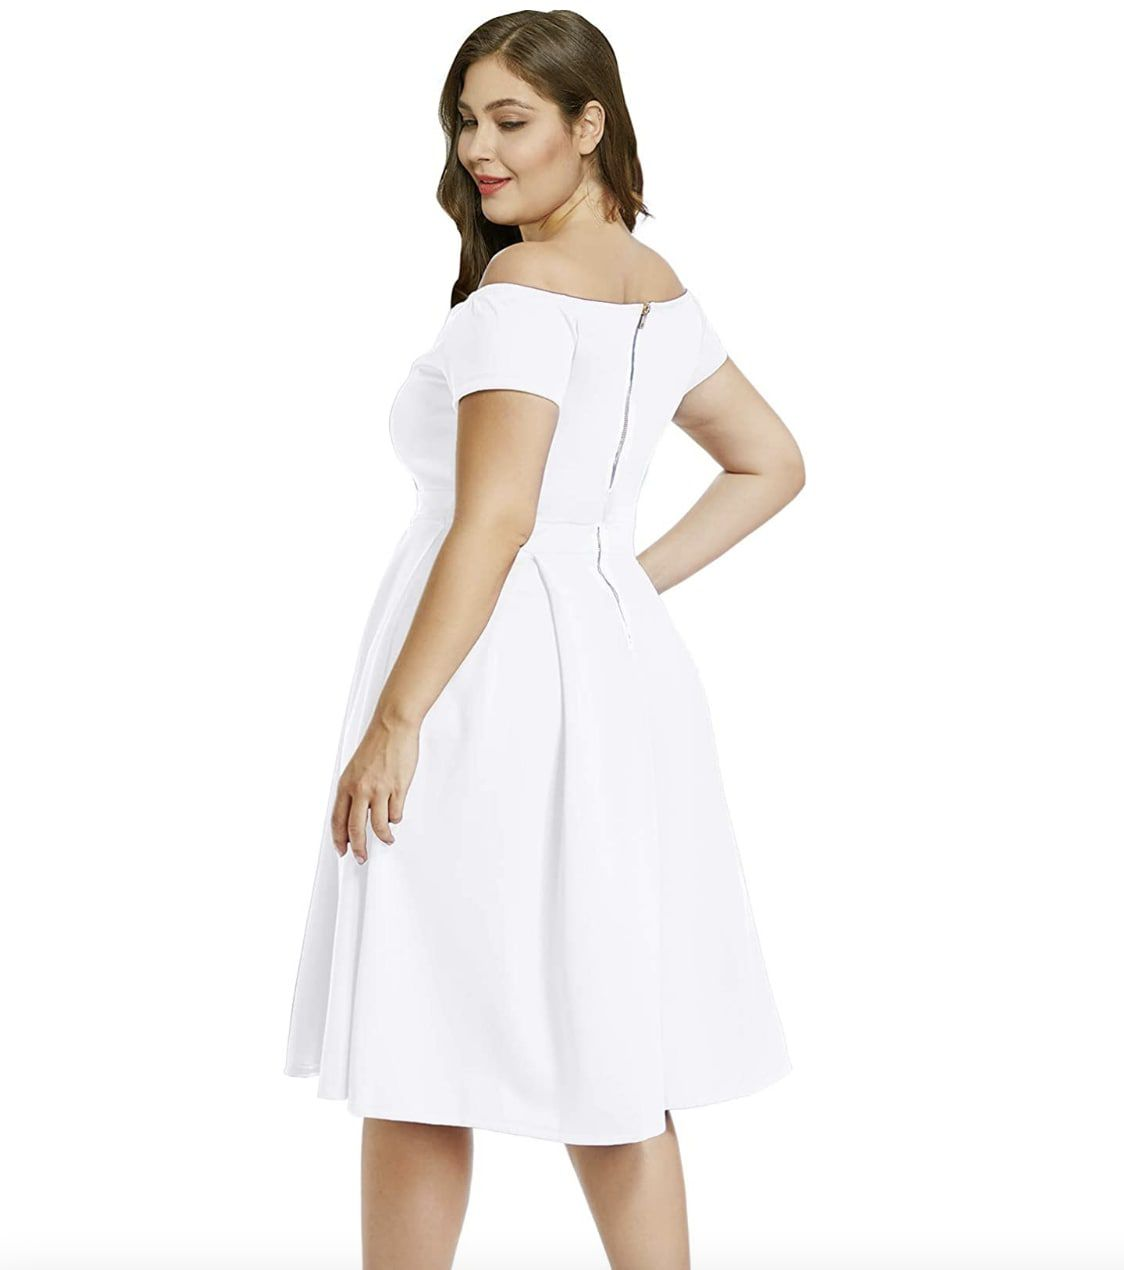 Style B07BPXV9LM Lalagen White Size 18 Flare Sweetheart Tall Height Cocktail Dress on Queenly